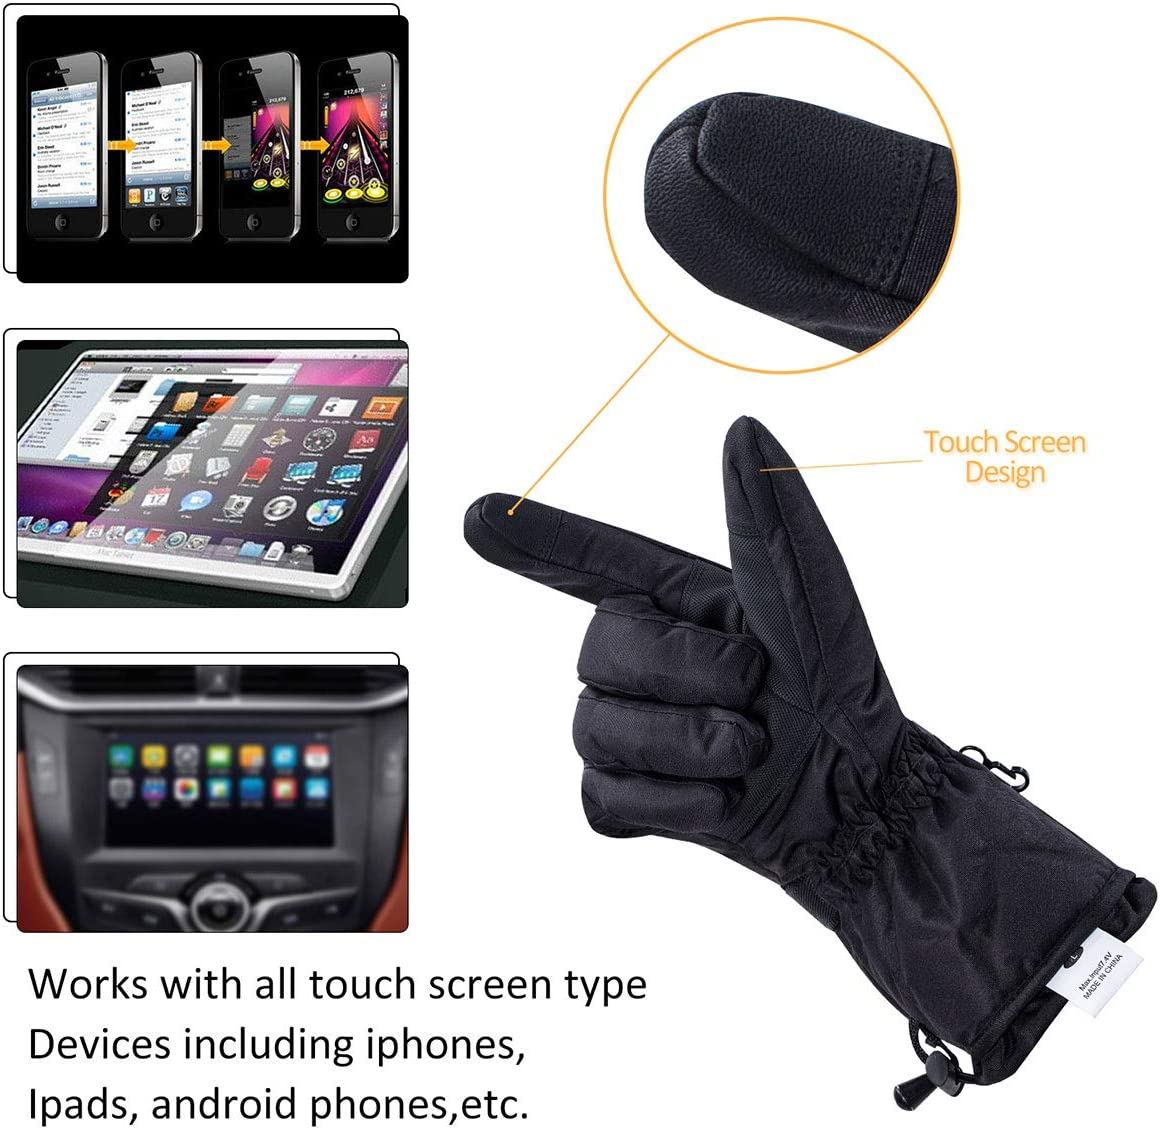 Winter Thermo Gloves Waterproof Insulated Hand Warms for Outdoor Sports Skiing Climbing Motorcycle HOOCUCO Battery Heated Gloves for Men Women